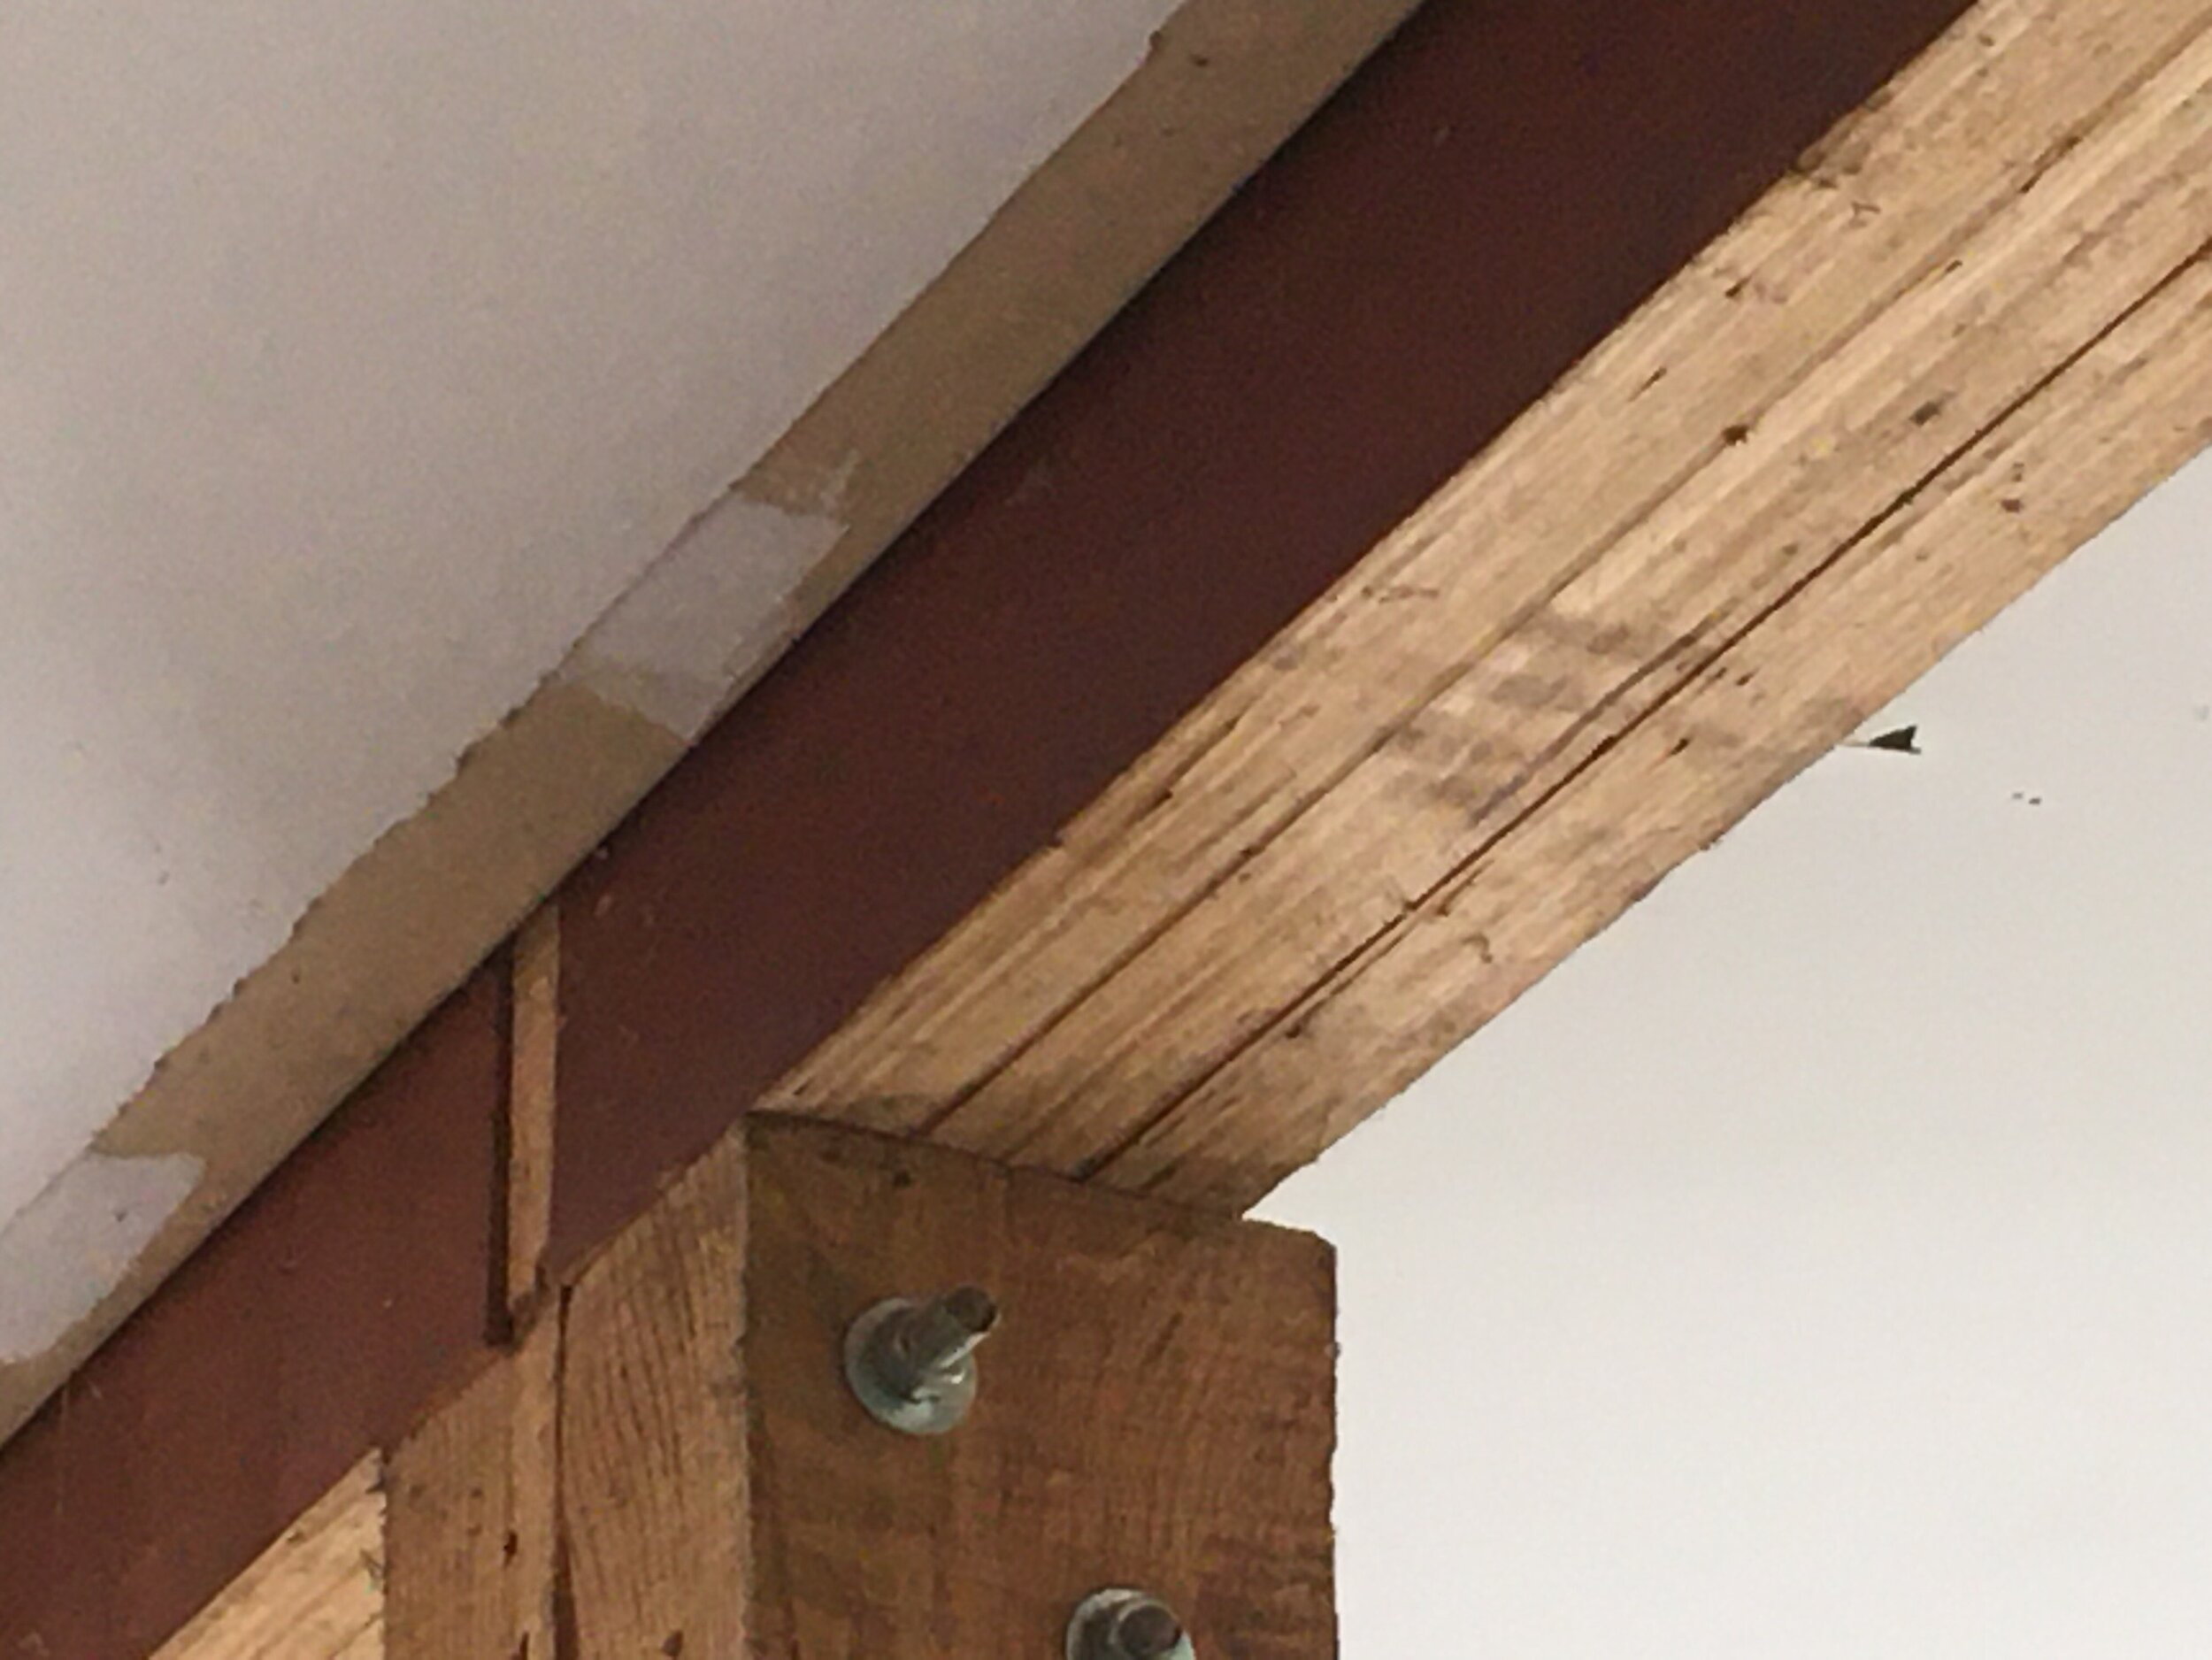 RoofOnline.com - Images - Engineered Wood - Image 1 .jpg